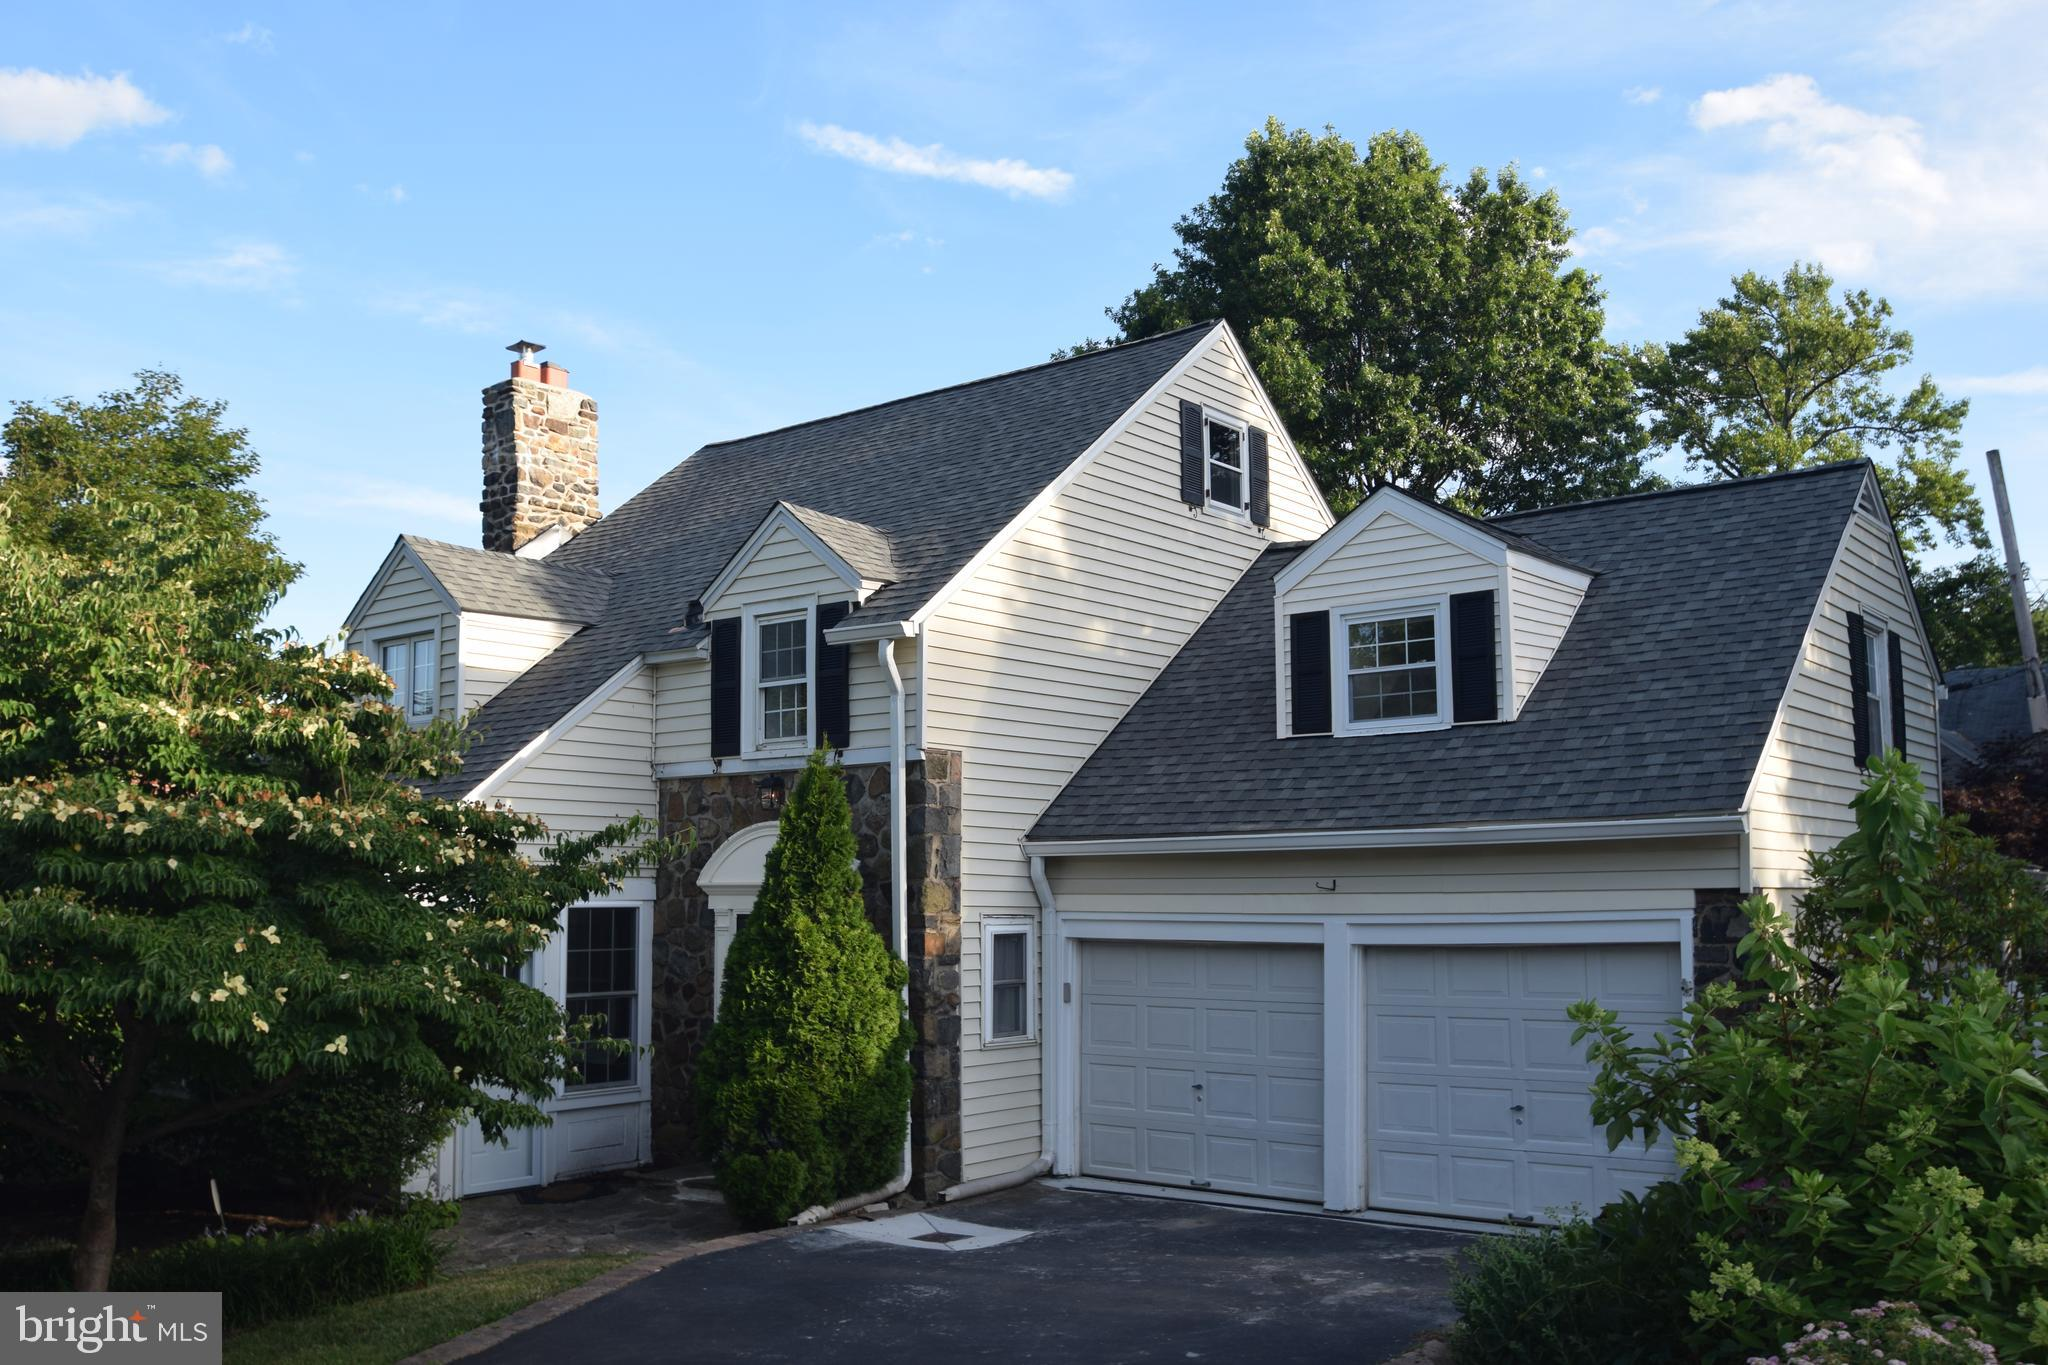 Immediate possession possible for this rarely available 4 bedroom, 2 1/2 bath stone Cape Cod style h